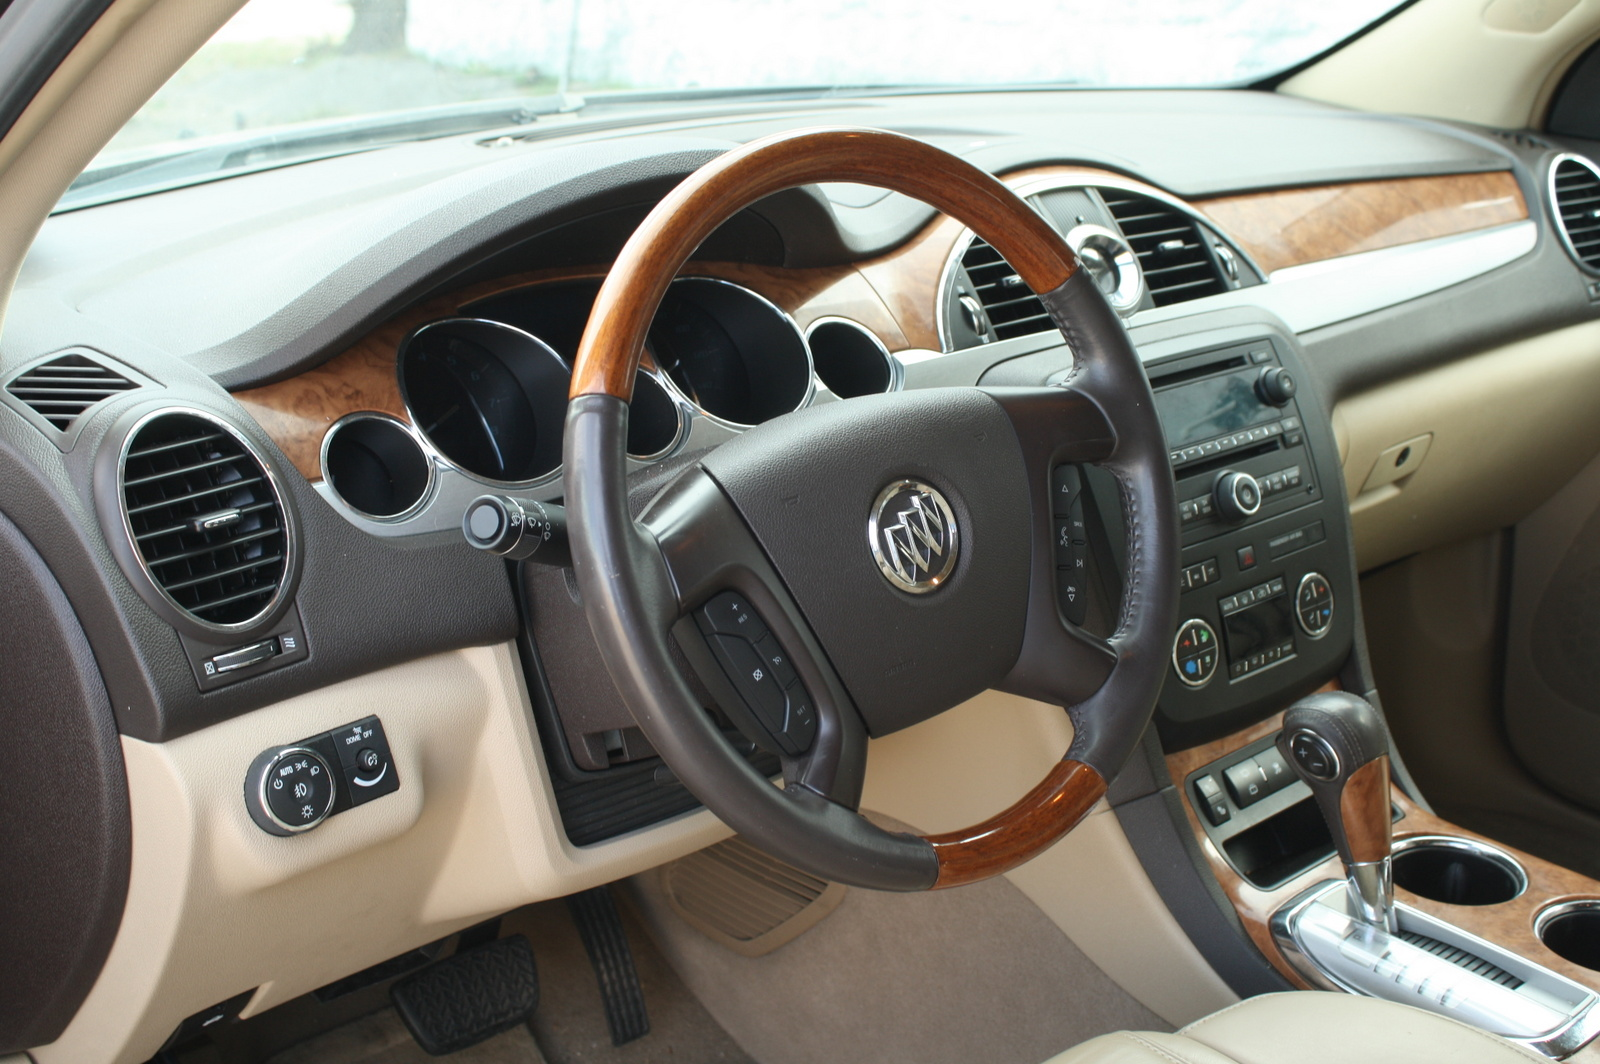 2013 Buick Enclave Interior Photo Black Models Picture